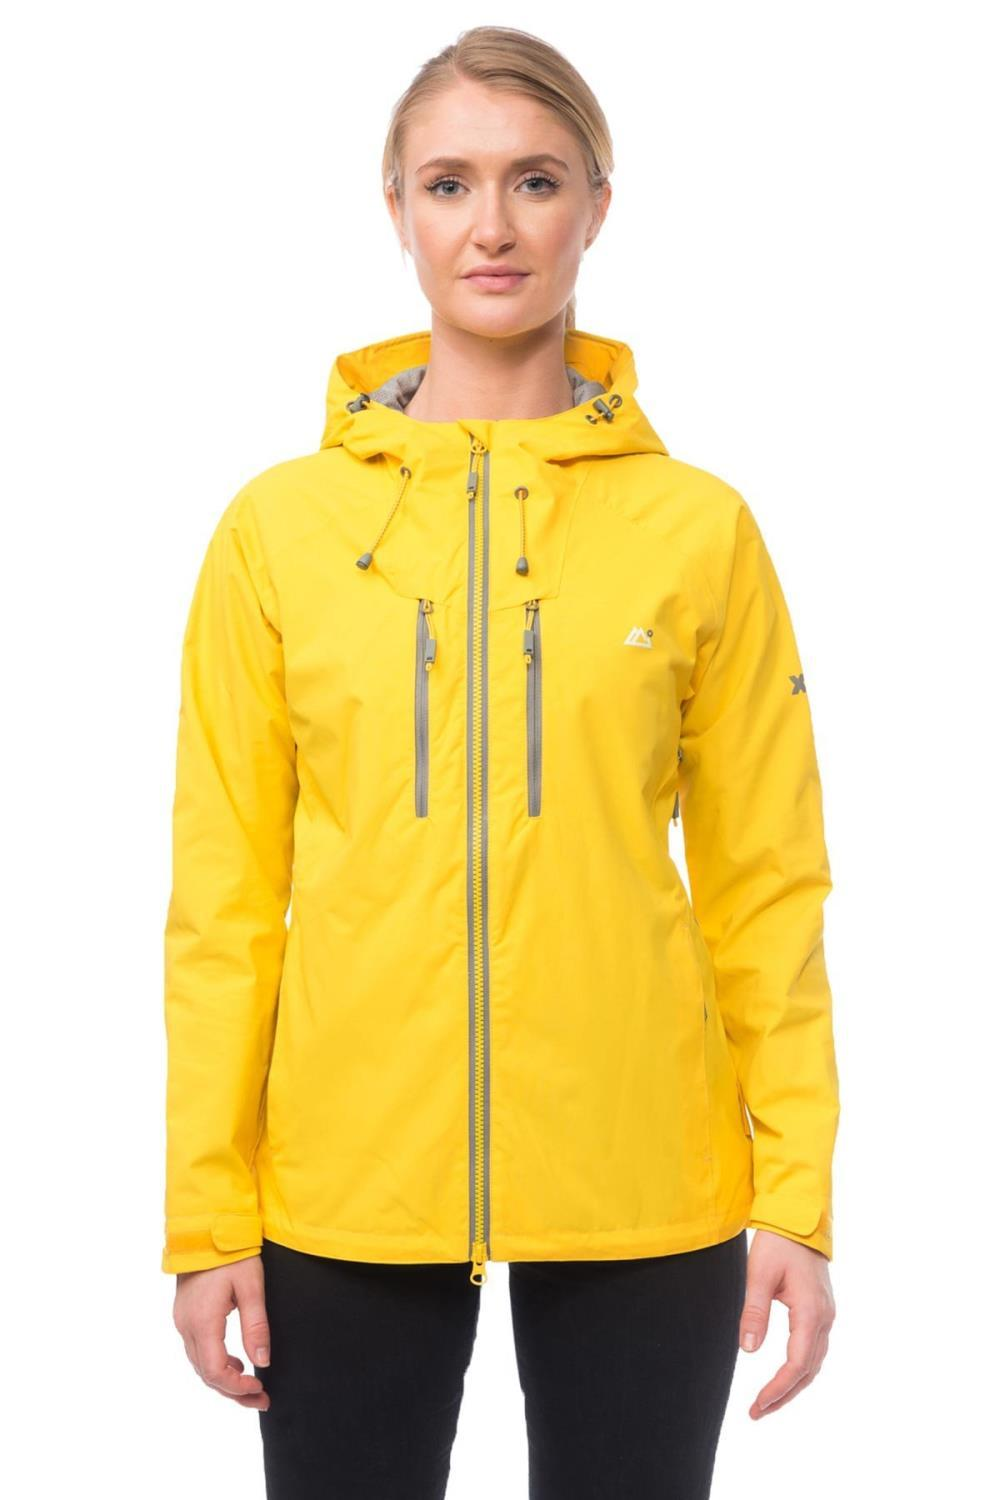 8de537822f190 Buy Target Dry Solar Ladies Sulphur Jacket from Fane Valley Stores  Agricultural Supplies